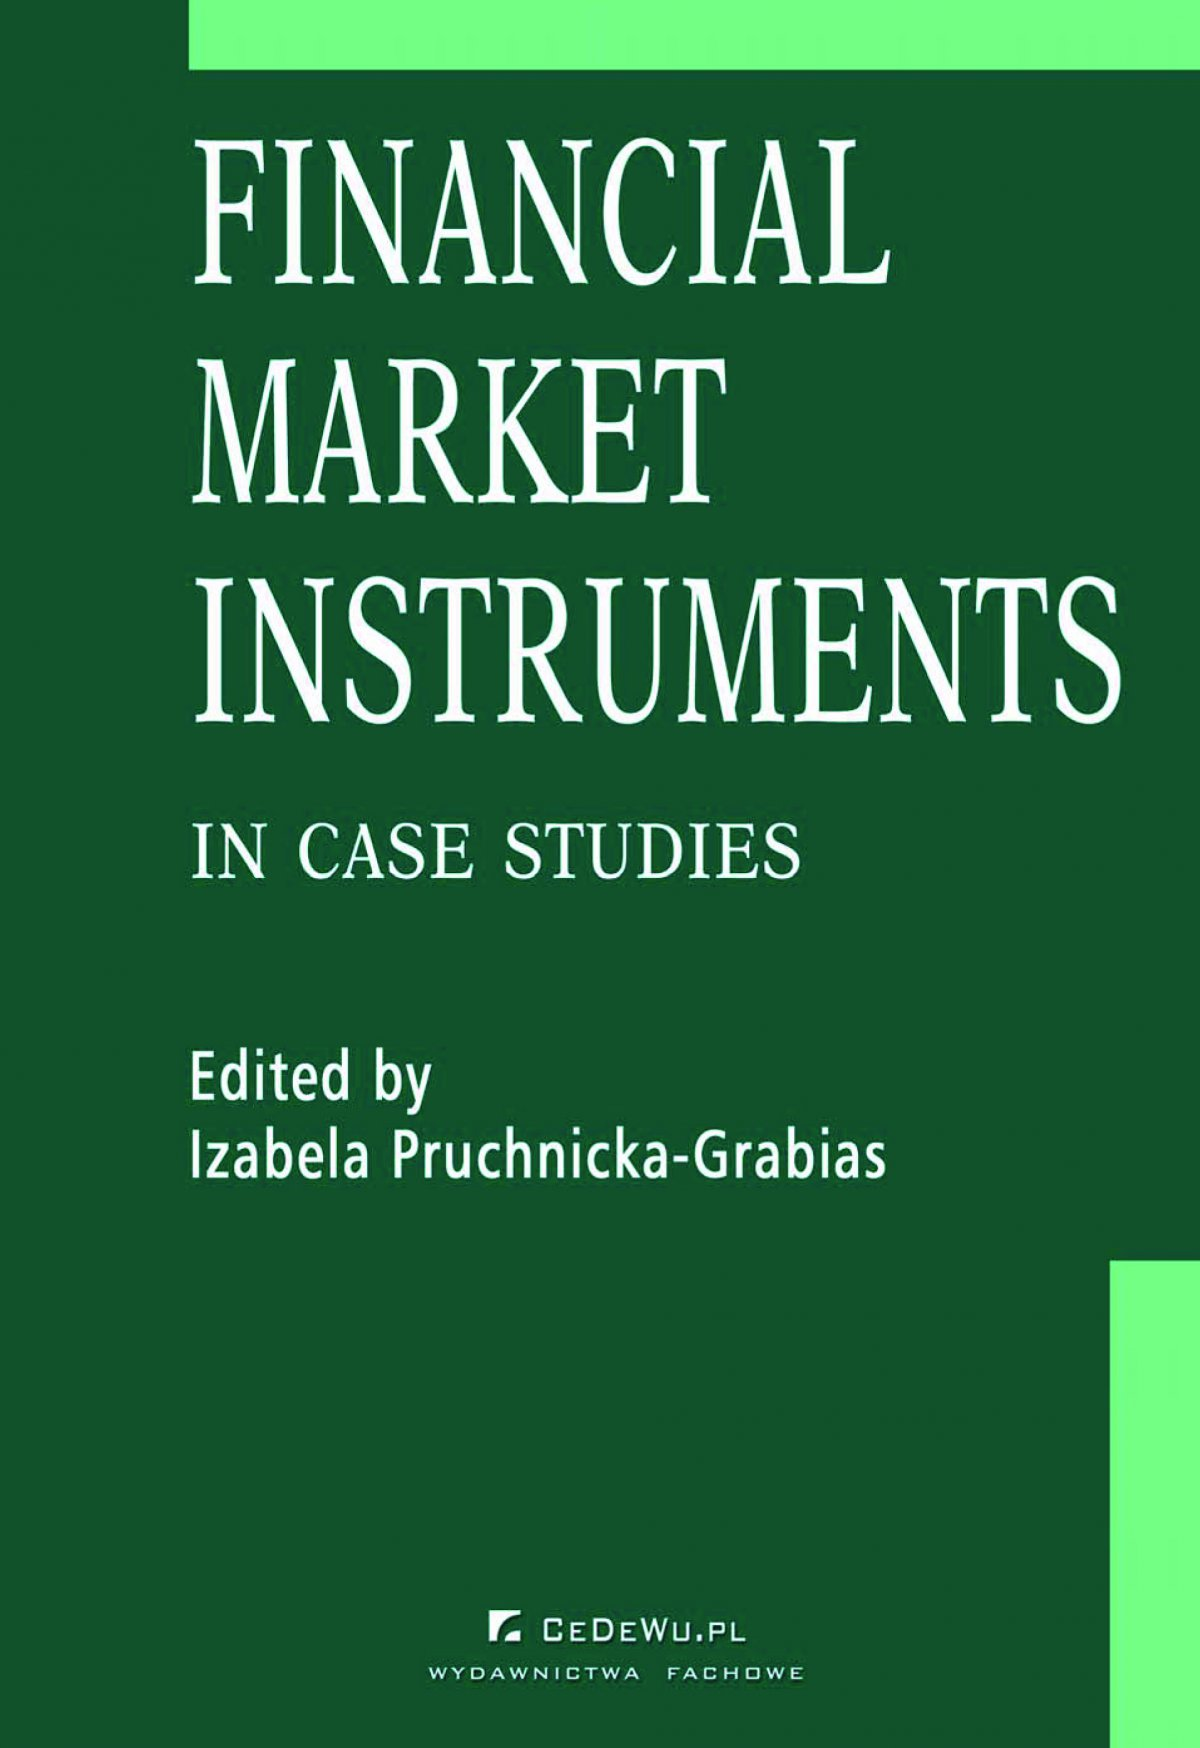 Financial market instruments in case studies. Chapter 4. Focus on Options – Izabela Pruchnicka-Grabias - Ebook (Książka PDF) do pobrania w formacie PDF